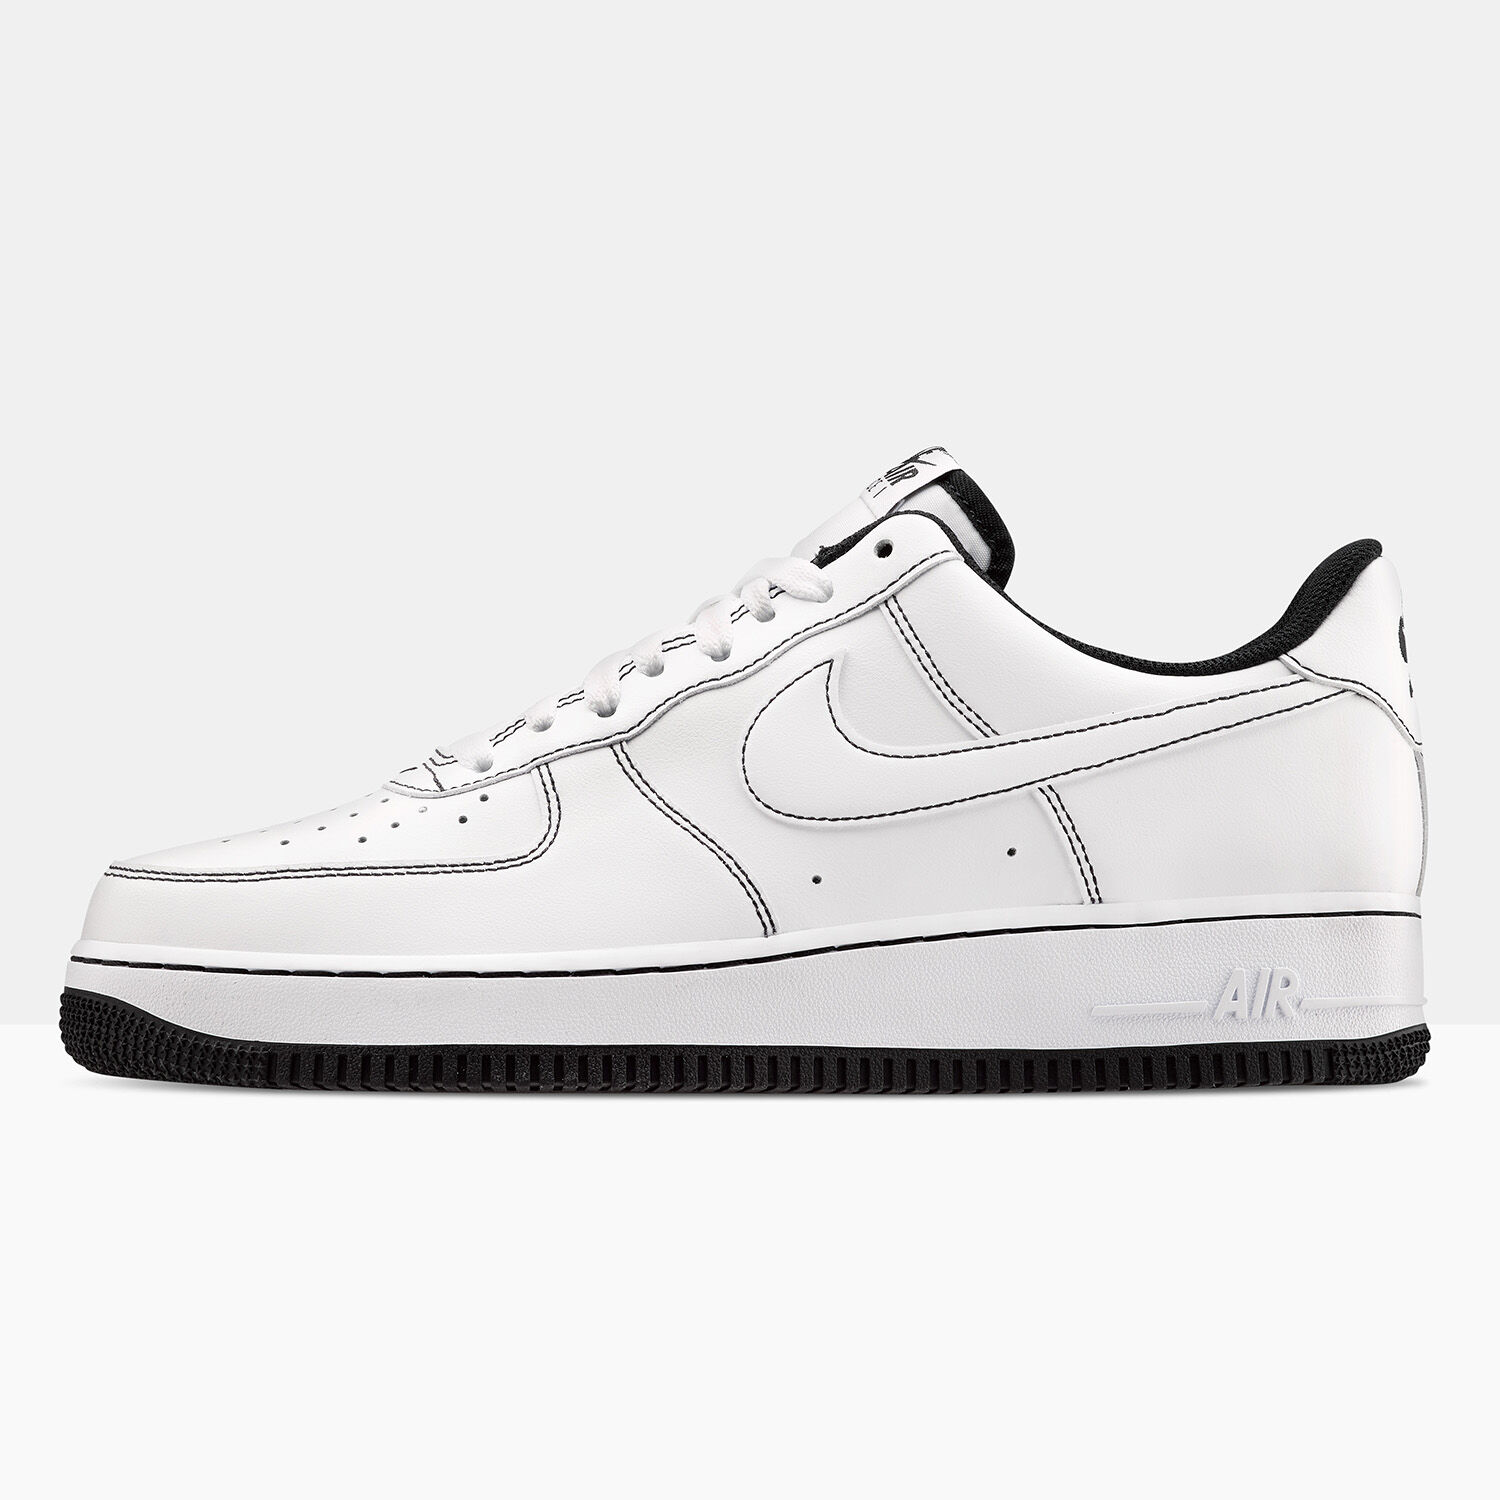 Nike Air Force 1 bianche e nere - AW LAB